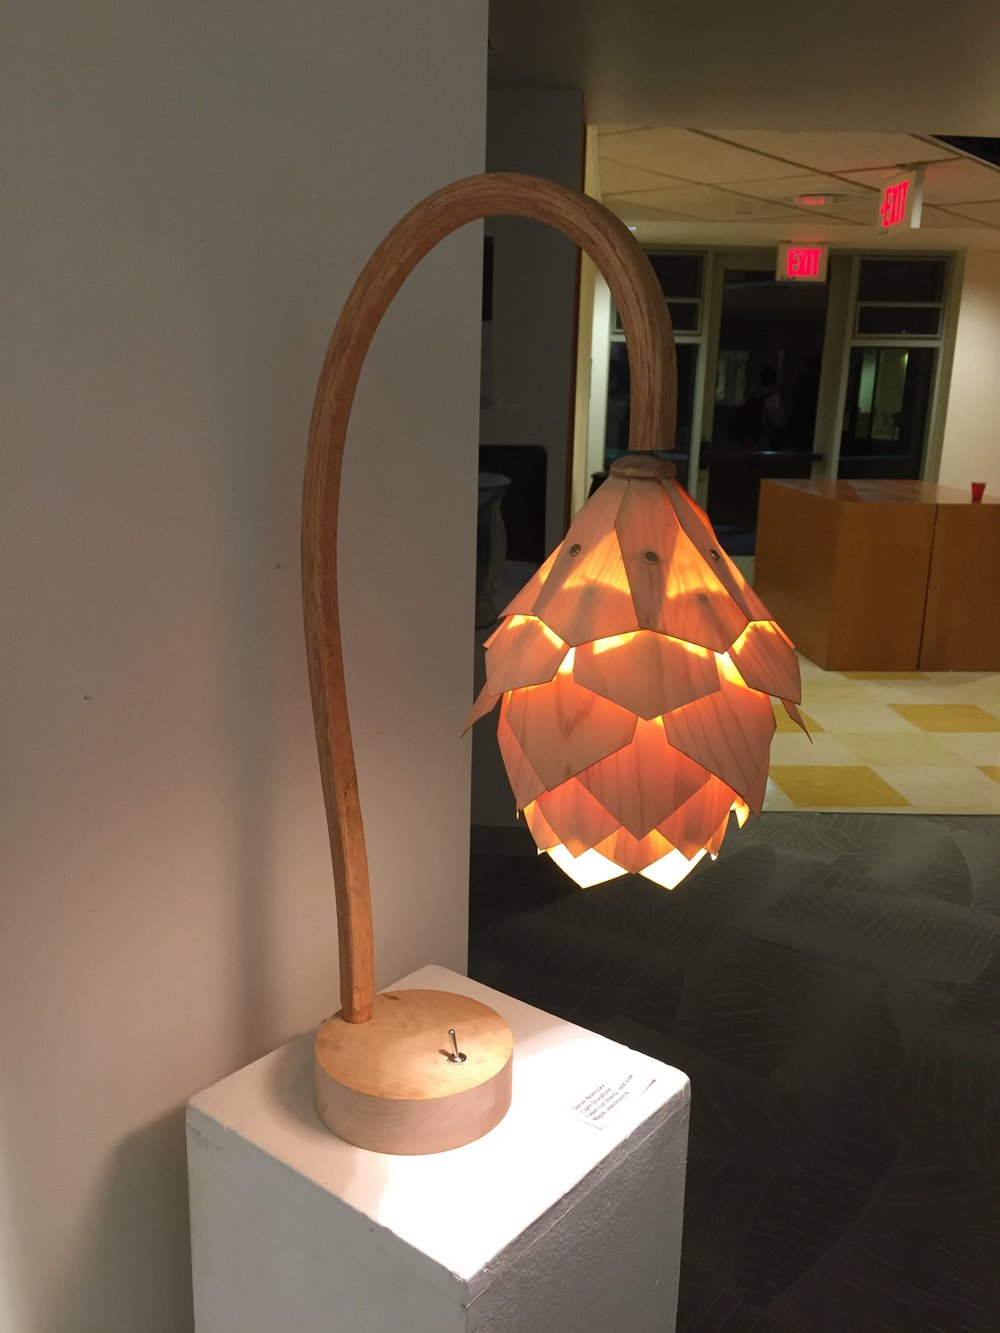 Pinecone Lamp (P1) (Woodworking) - Danny Noenickx